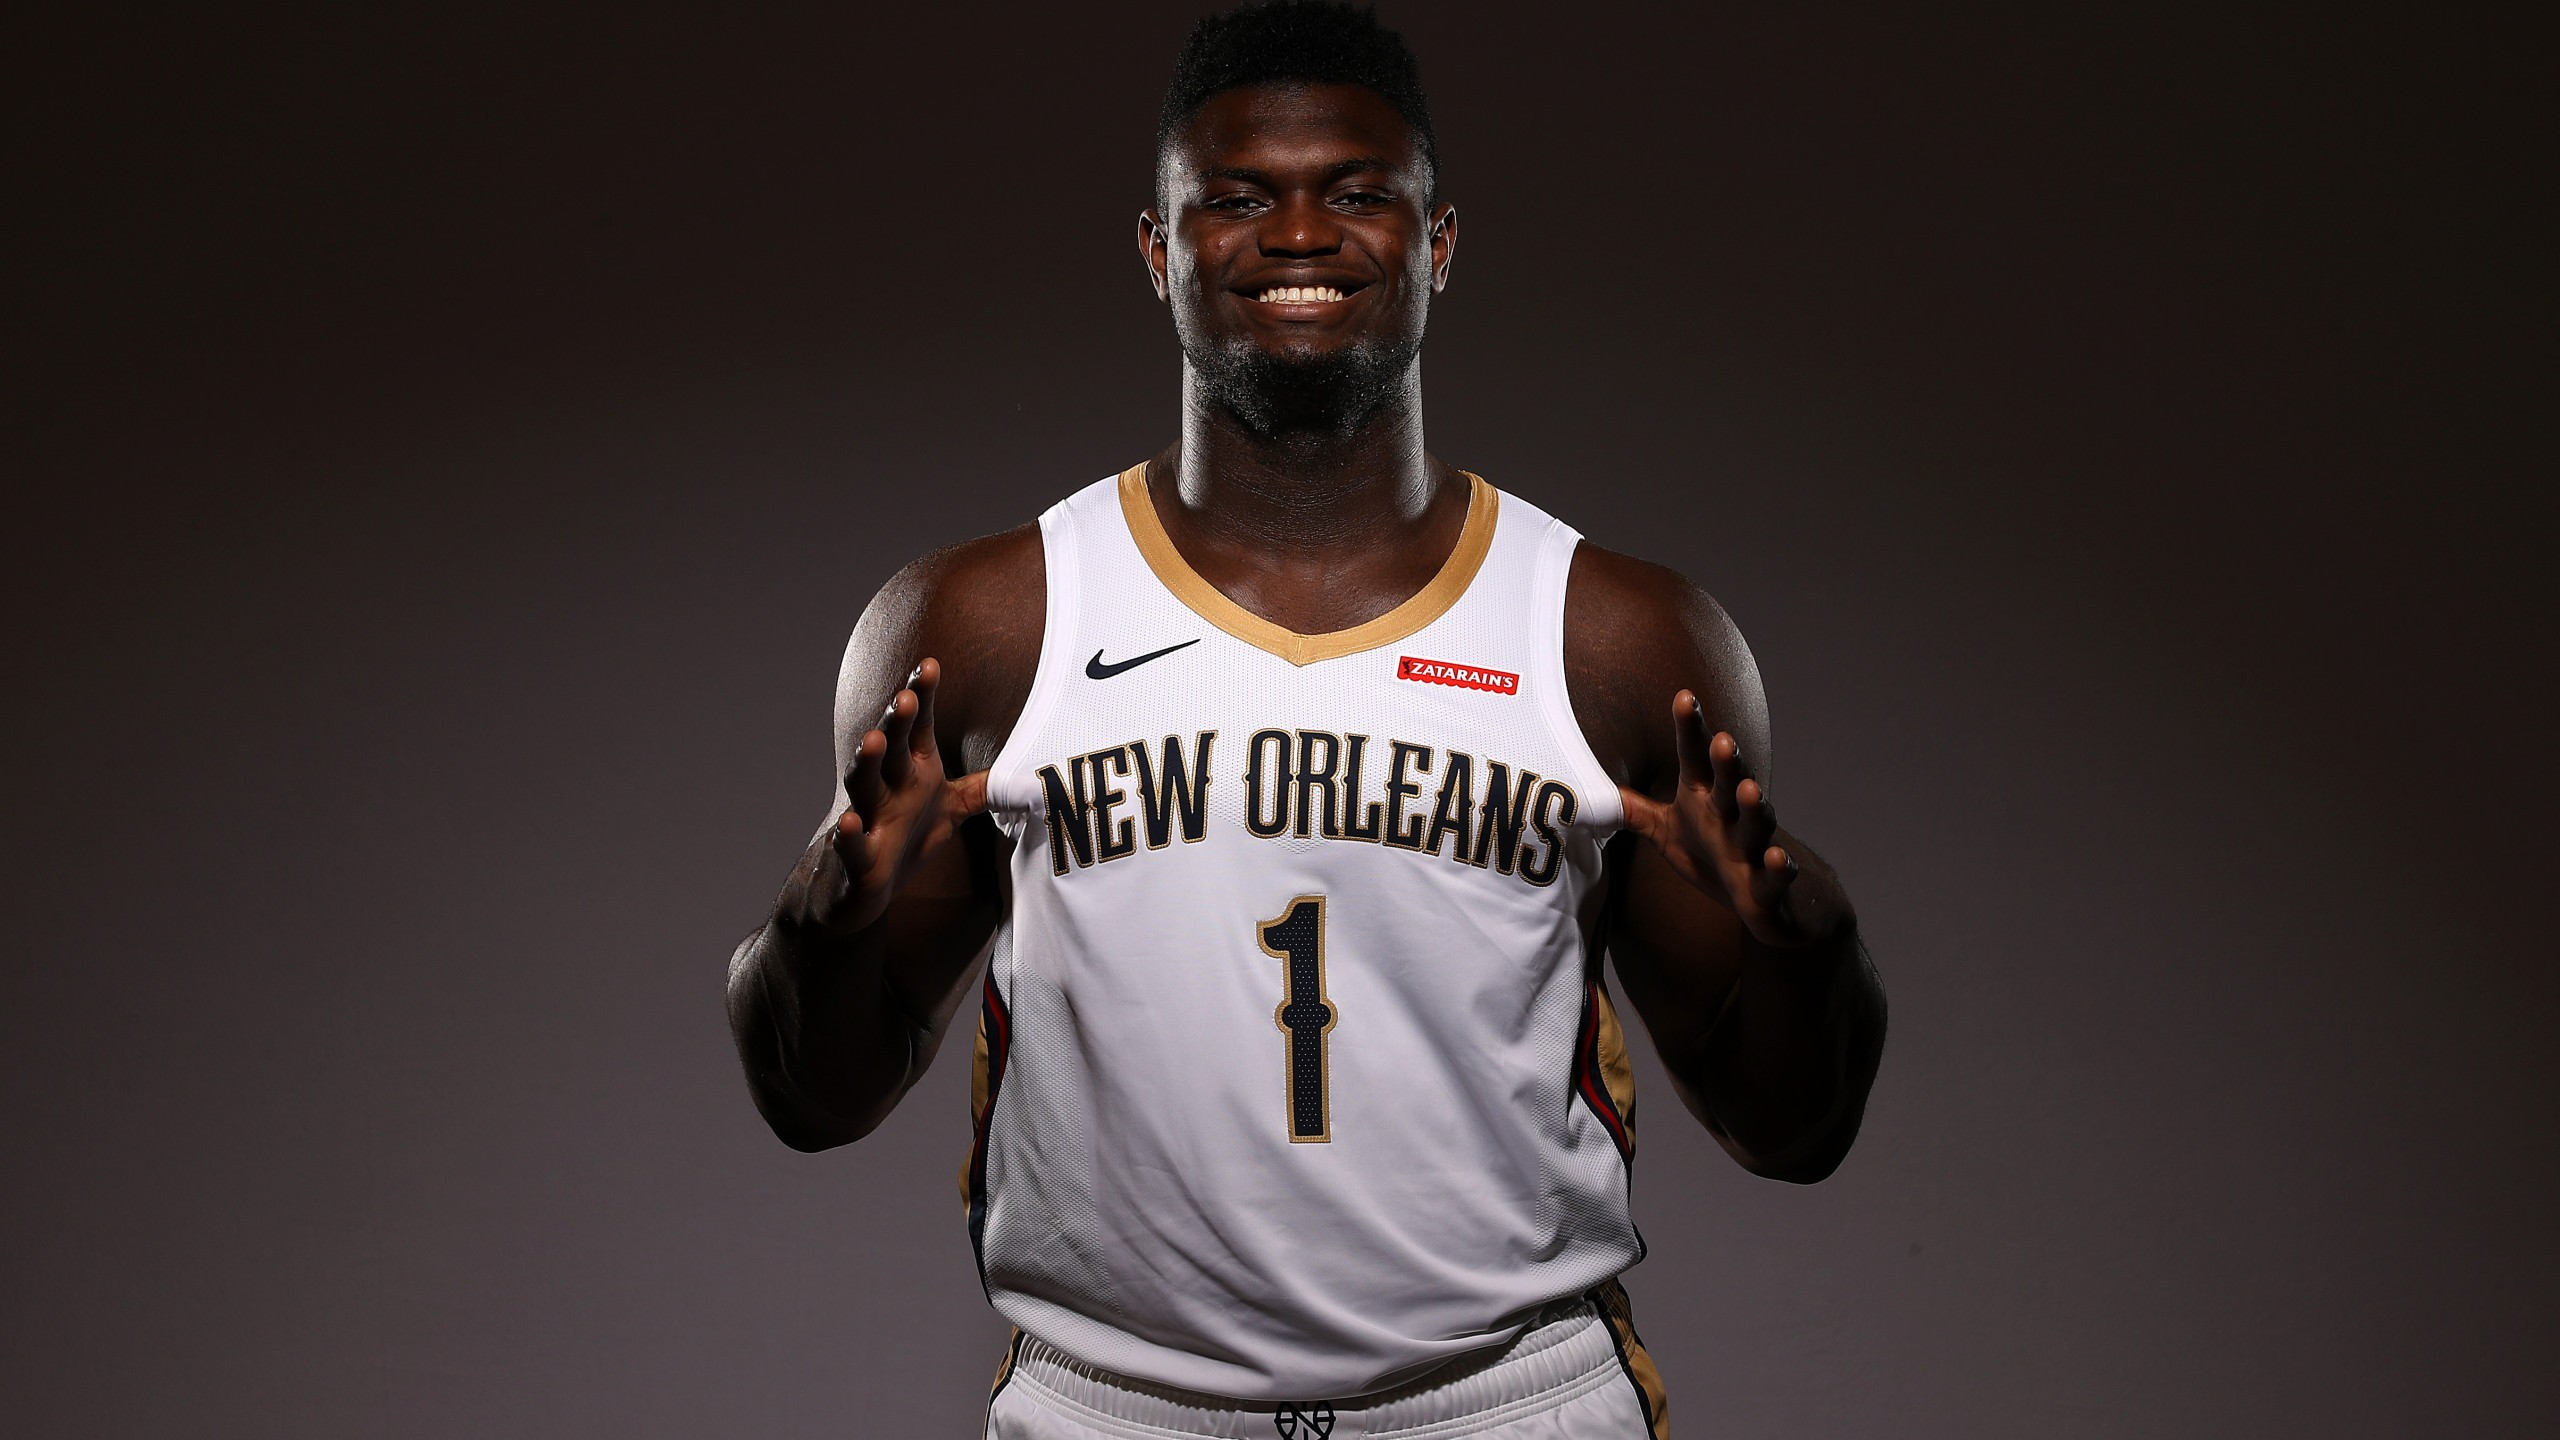 Zion Williamson New Orleans Wallpaper - KoLPaPer - Awesome ...